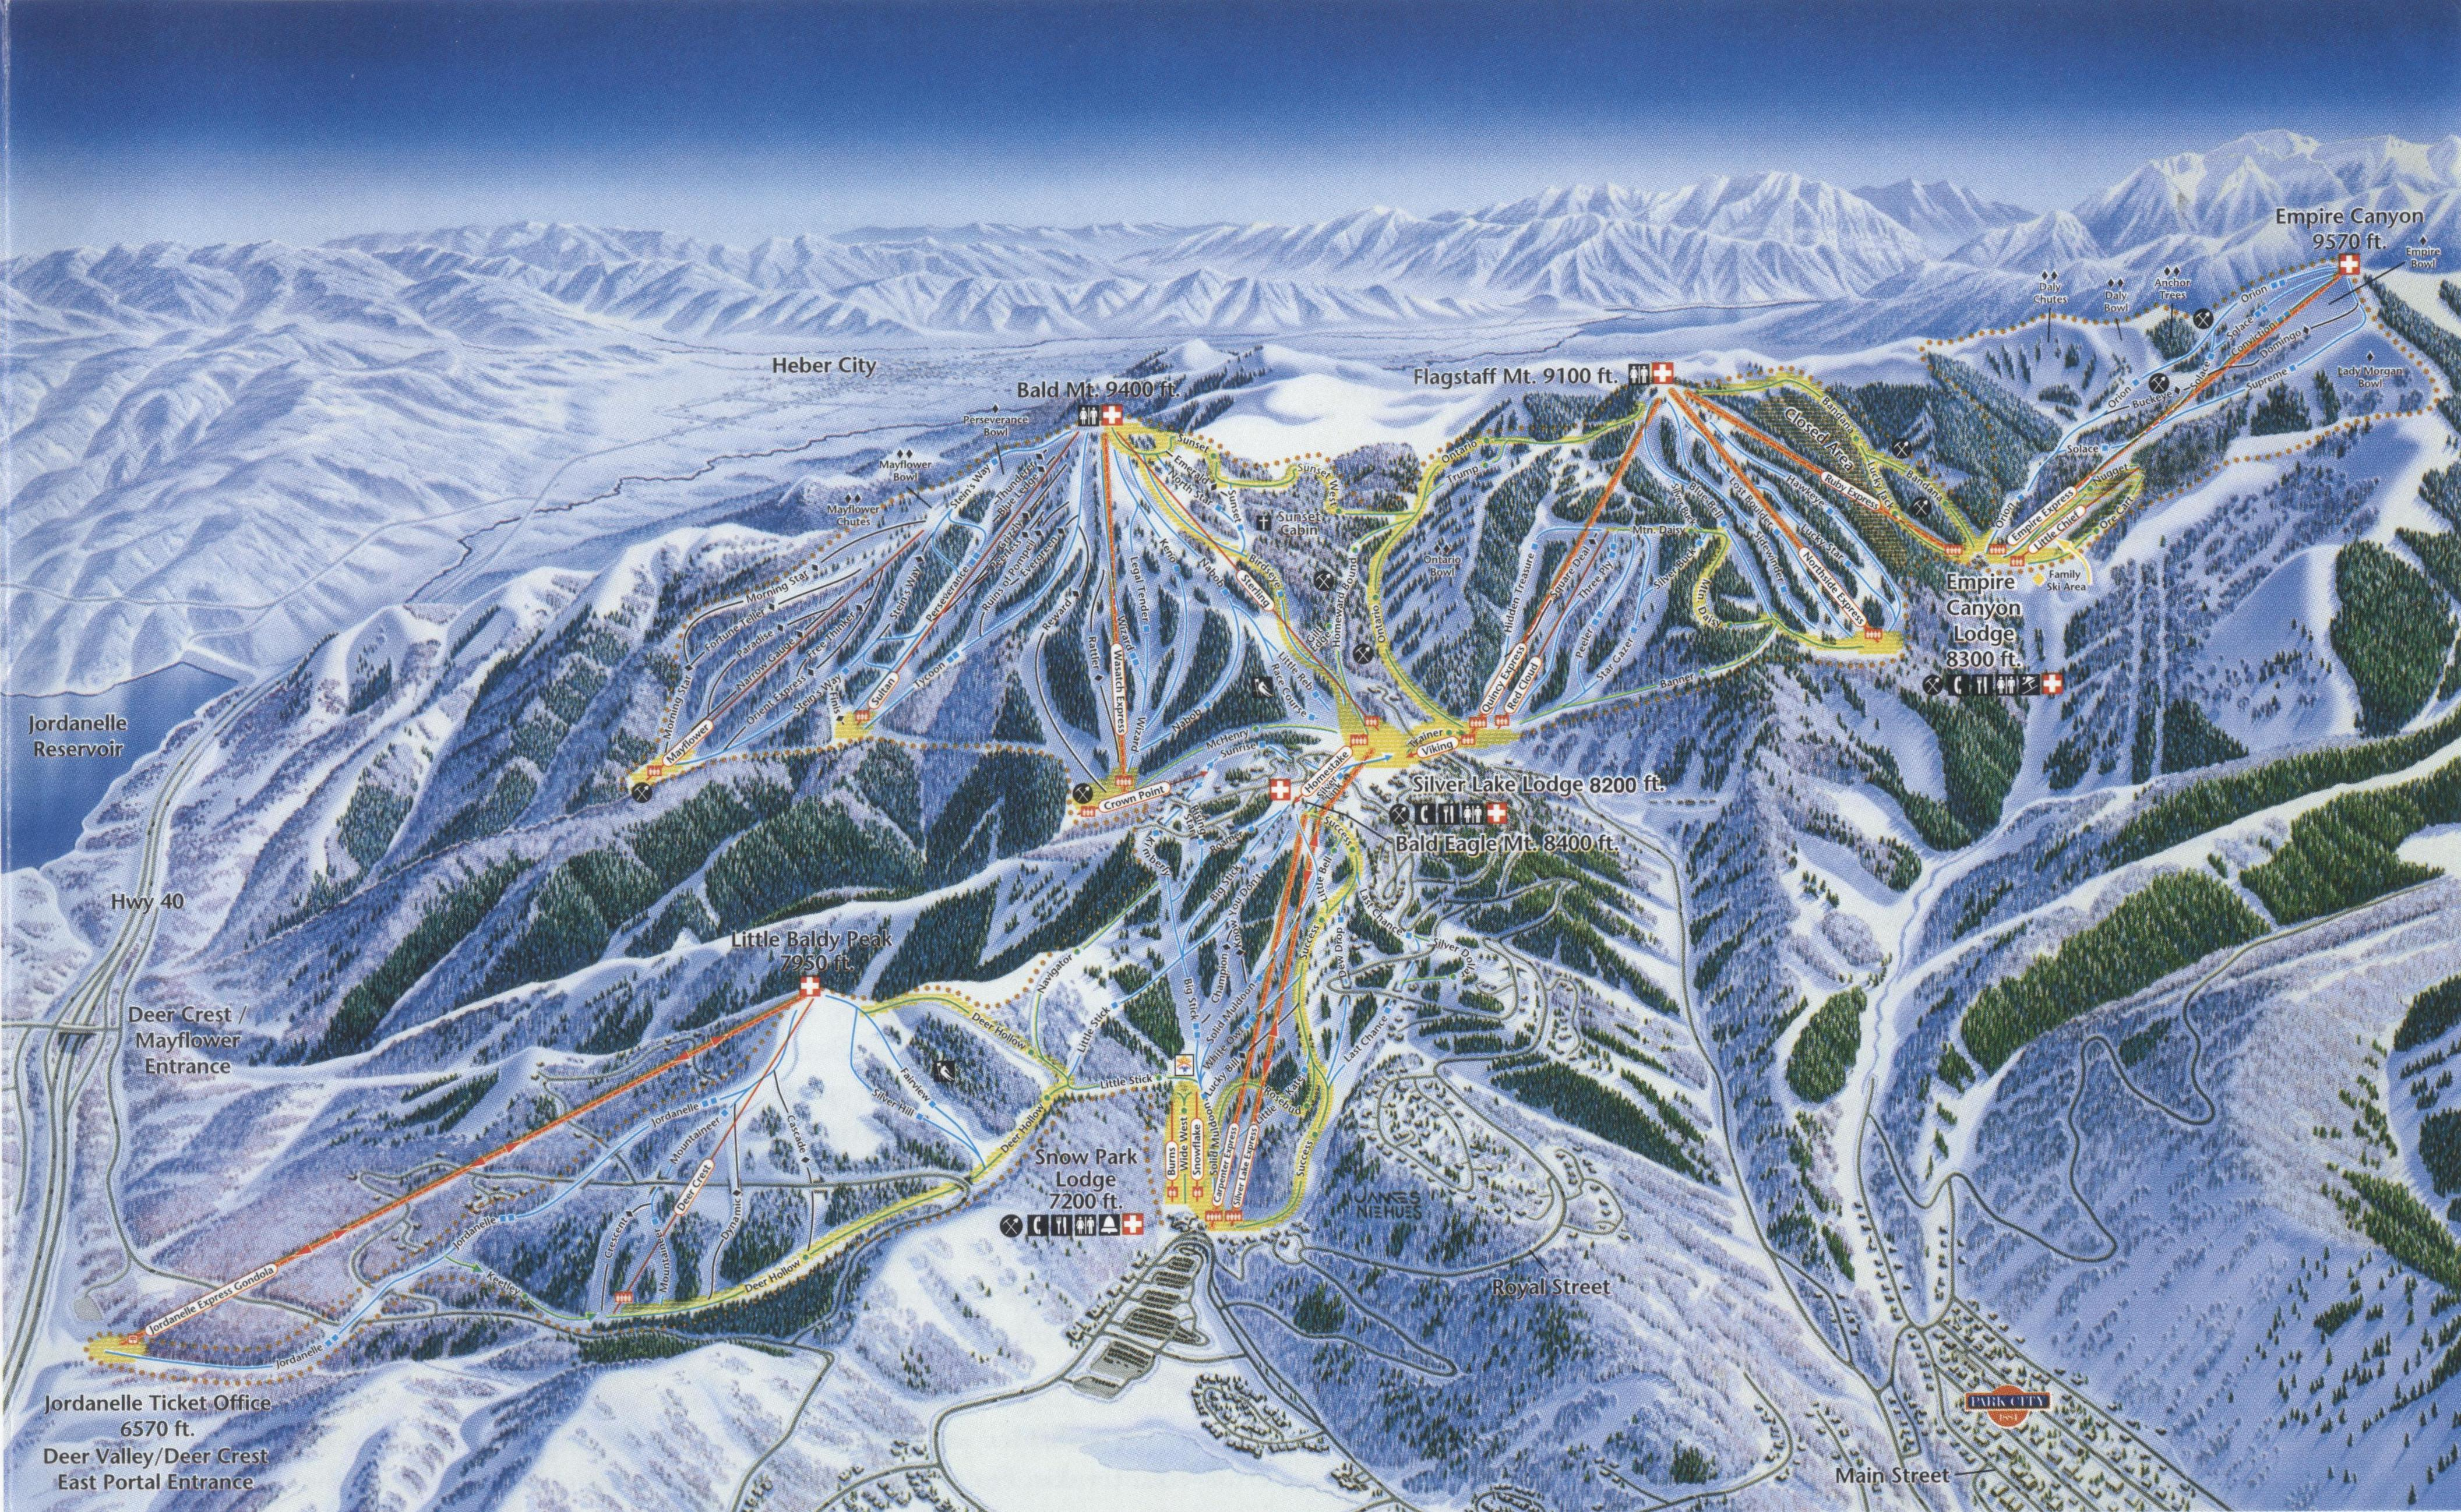 Deer Valley Resort SkiMap